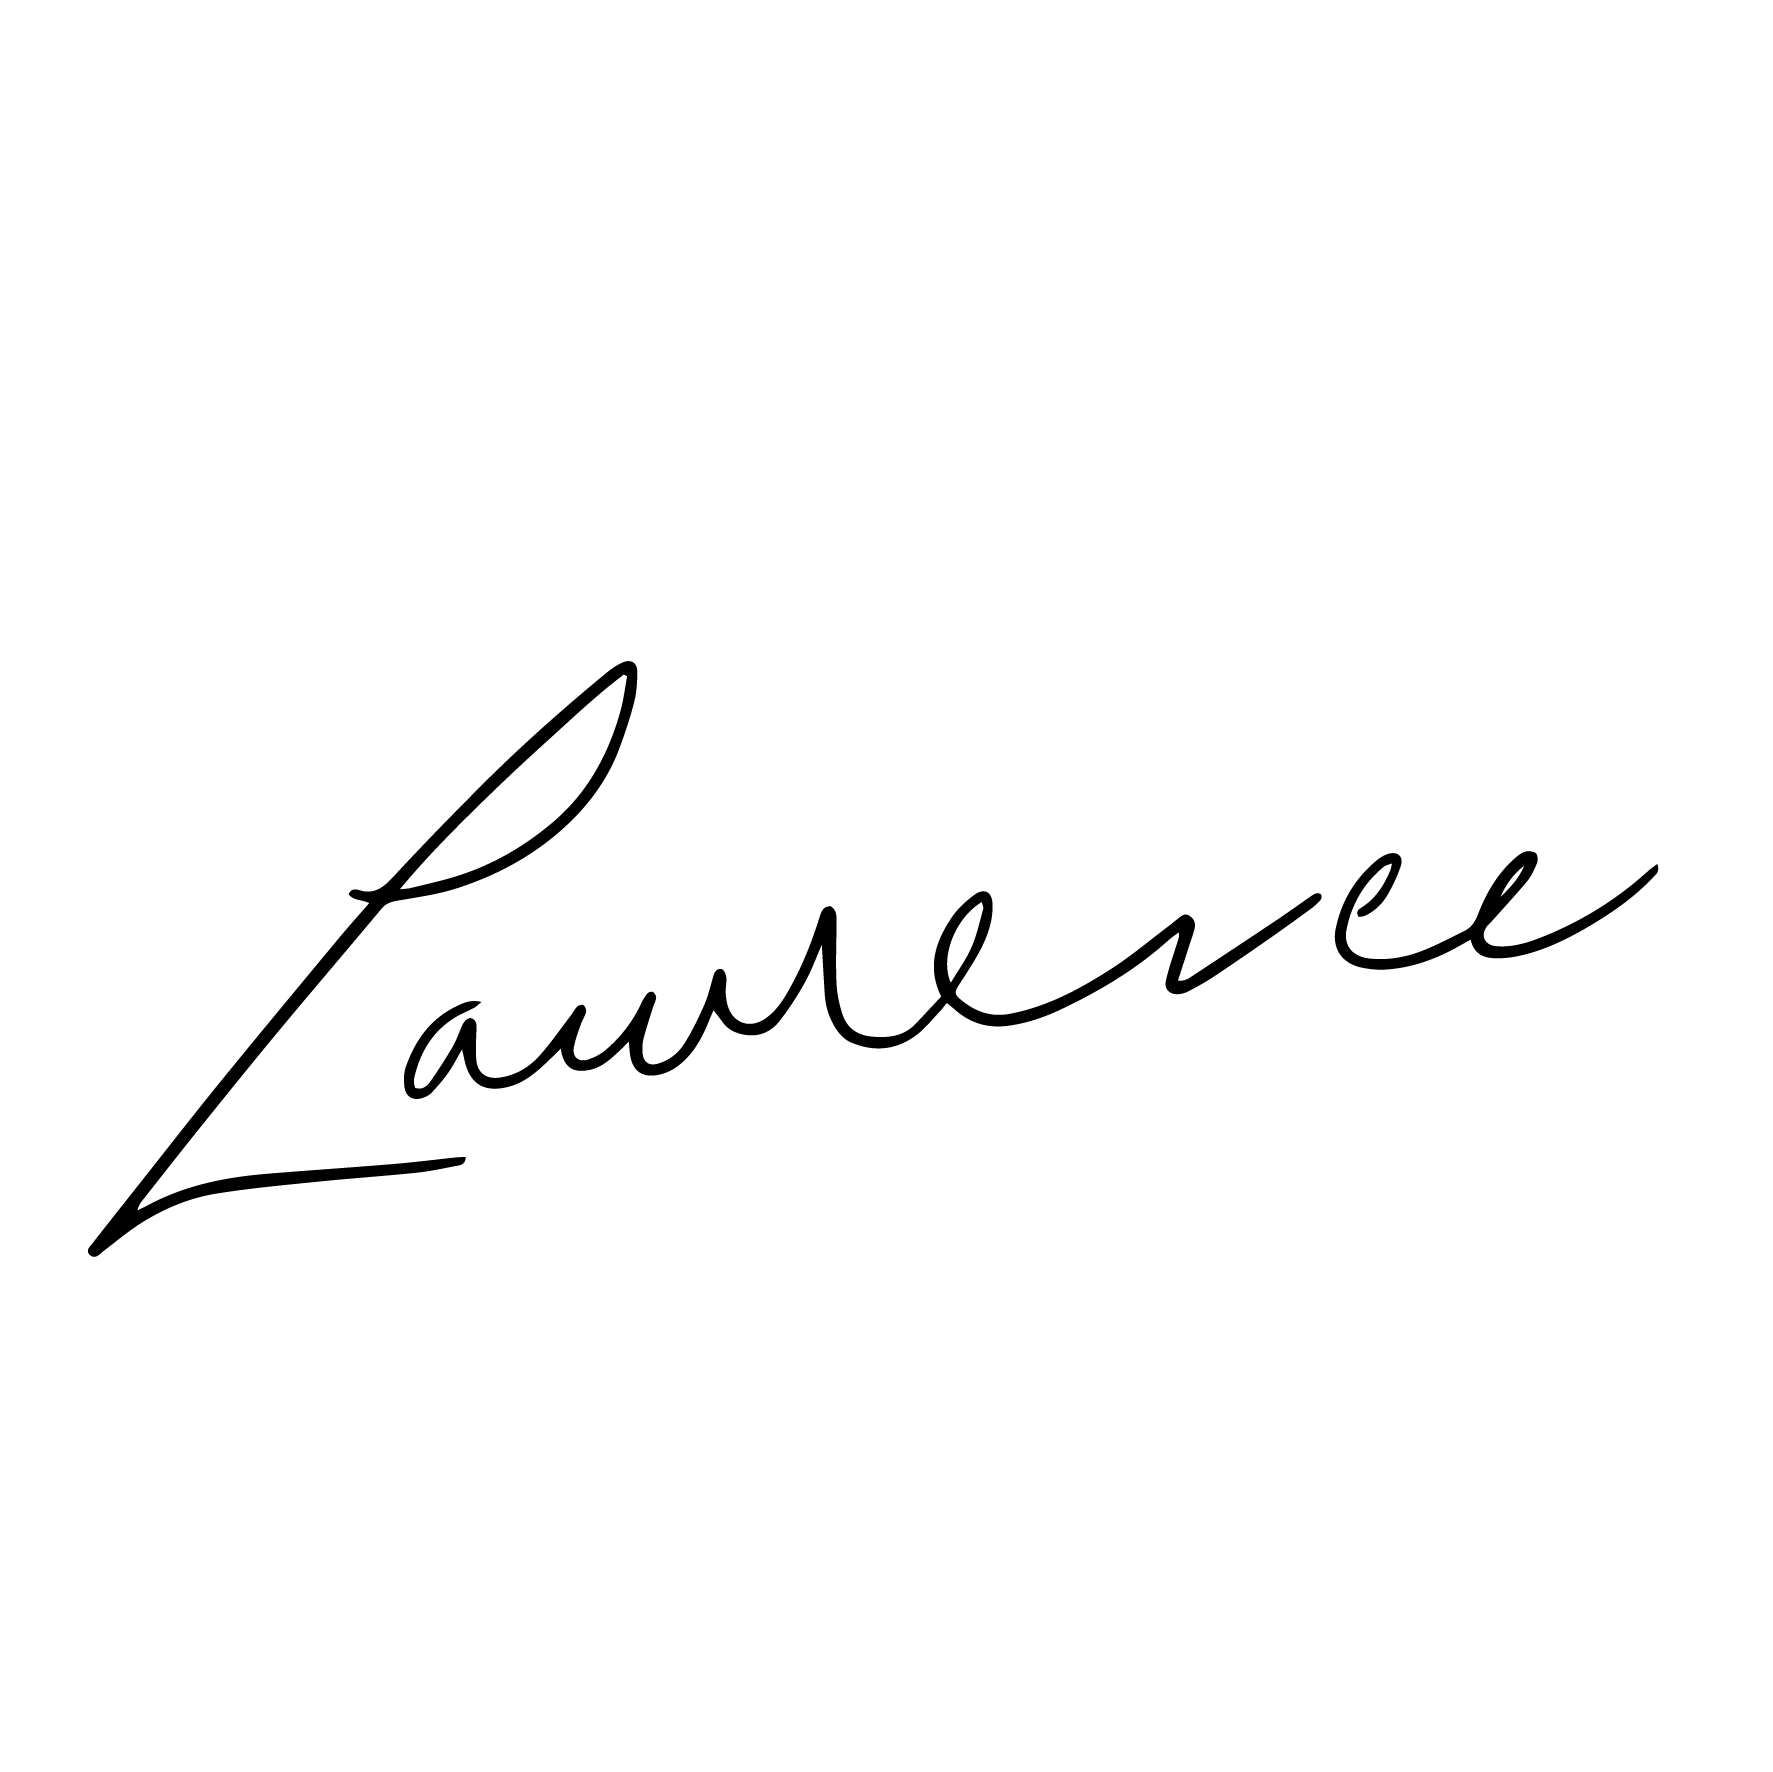 signature of Laurence the engineer